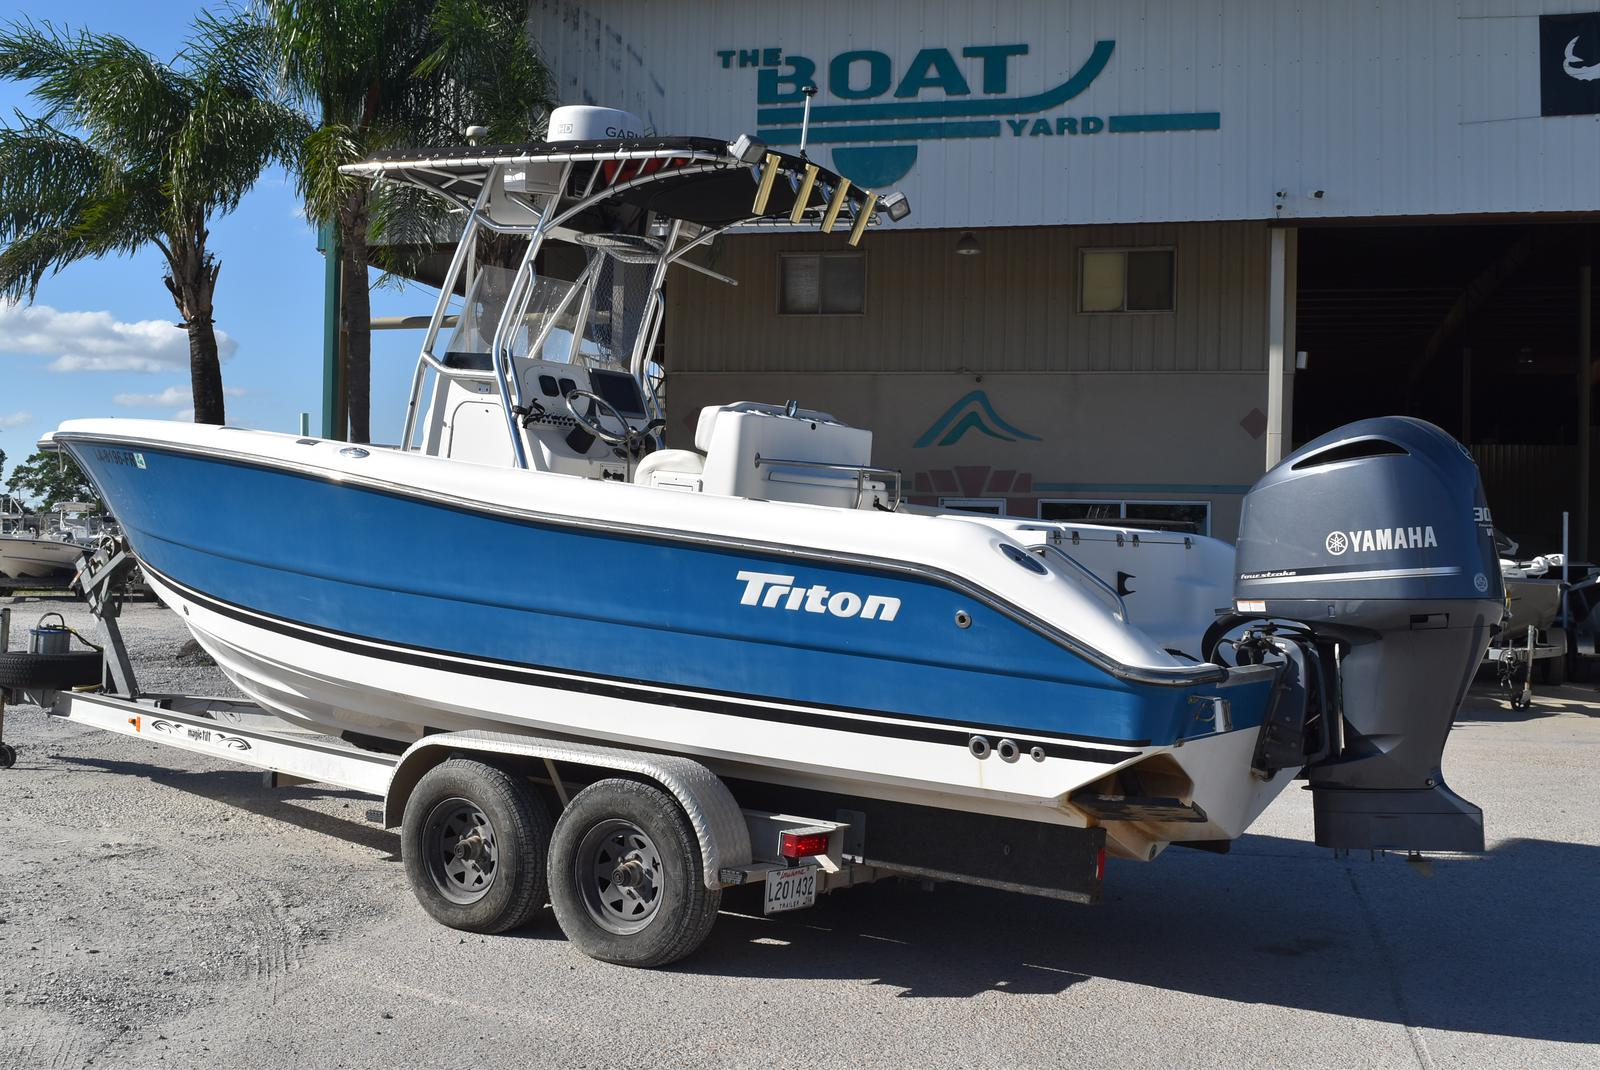 2006 Triton boat for sale, model of the boat is 2486 & Image # 15 of 24